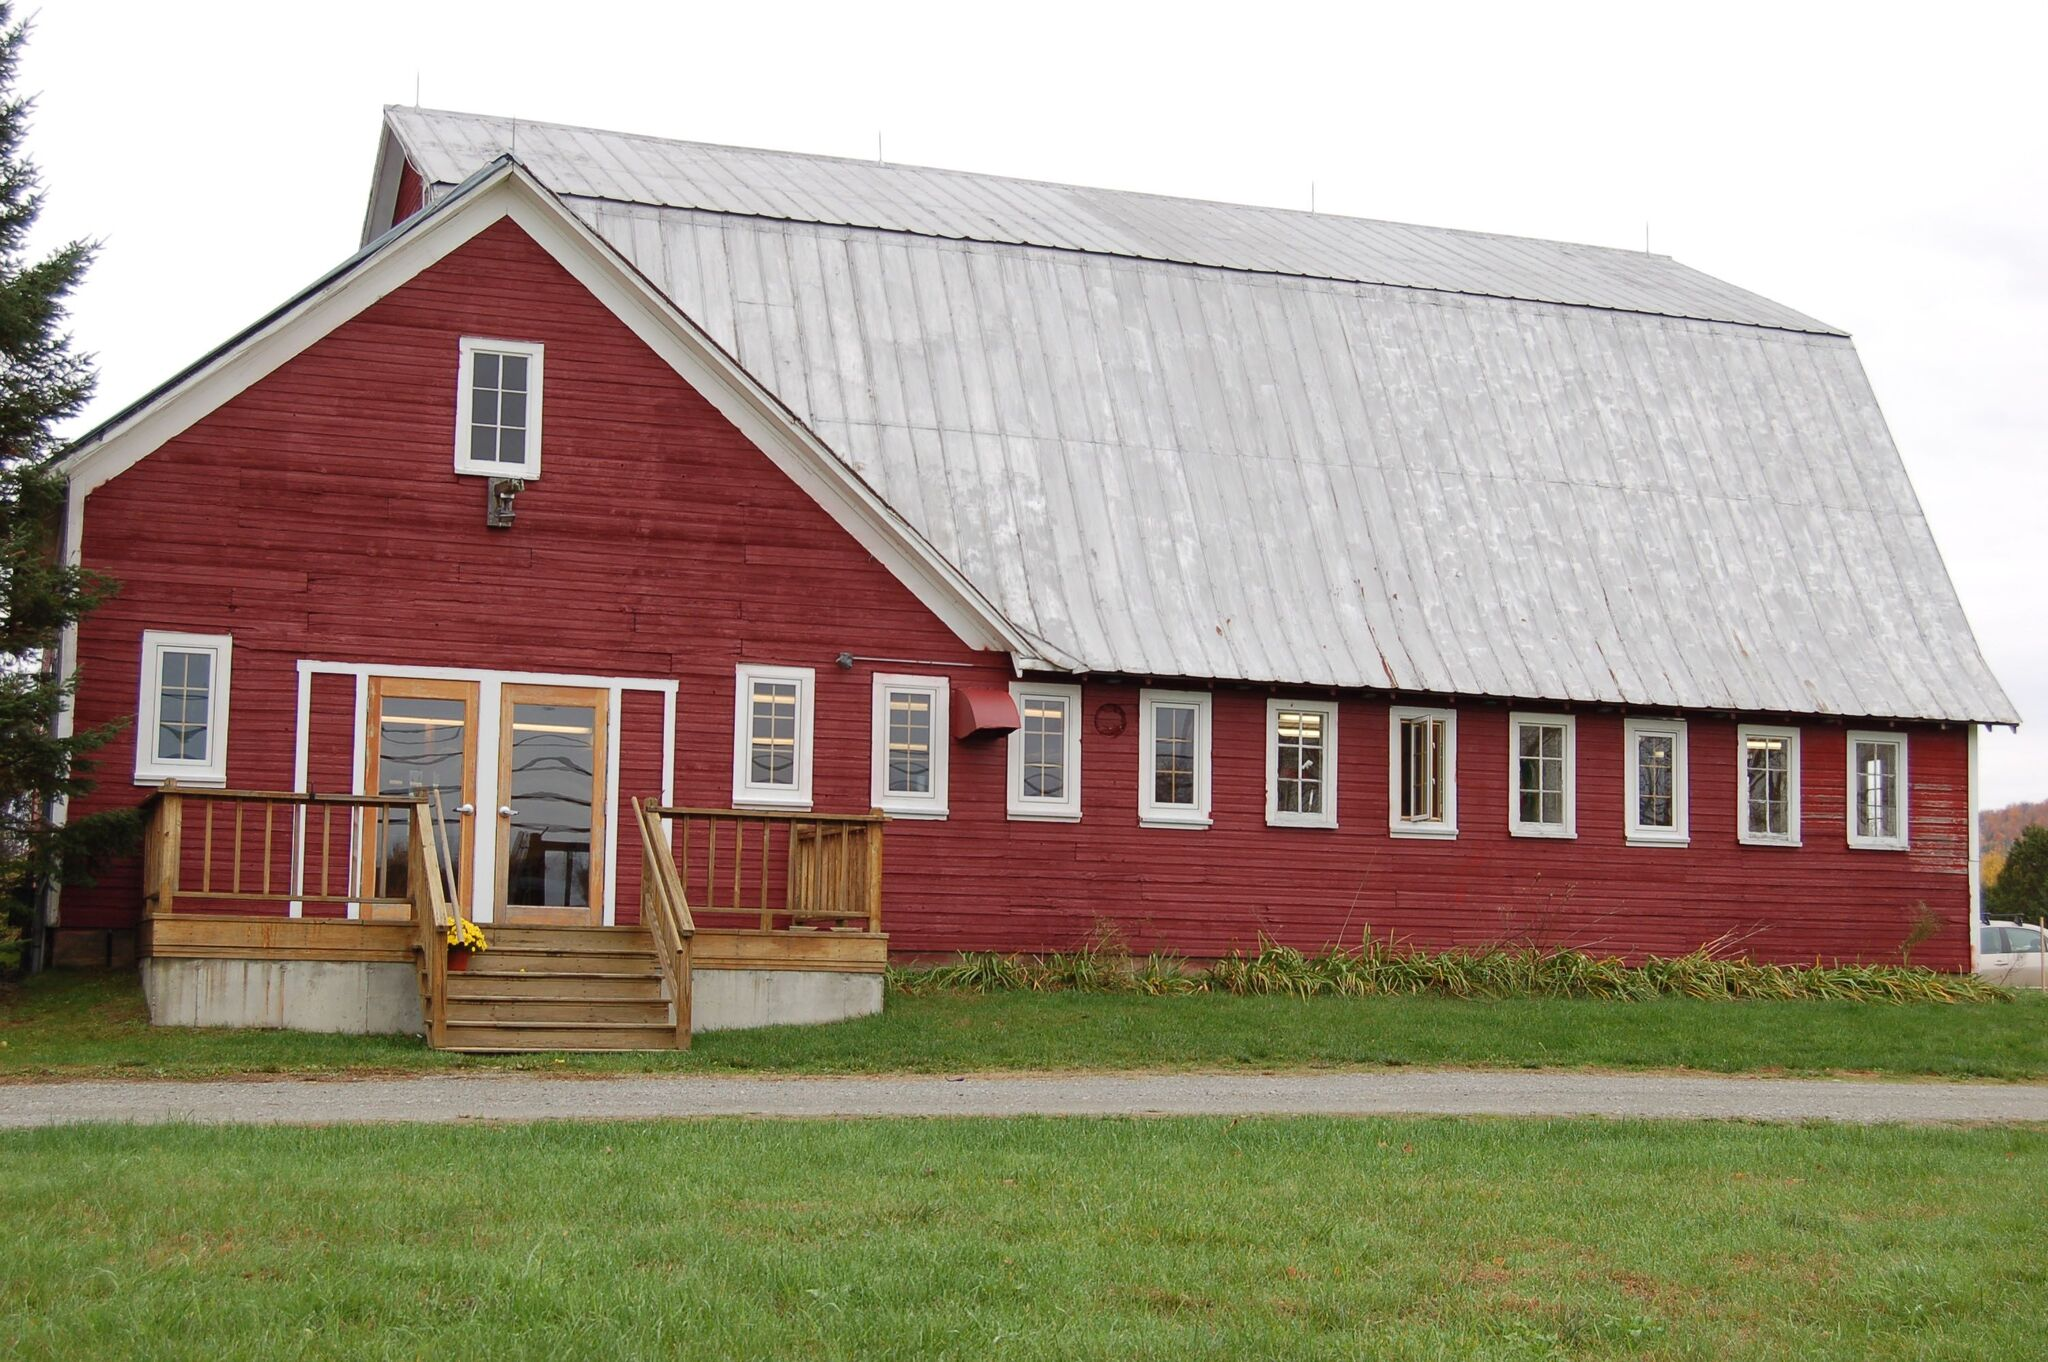 Our Home is a Converted Barn on Route 15